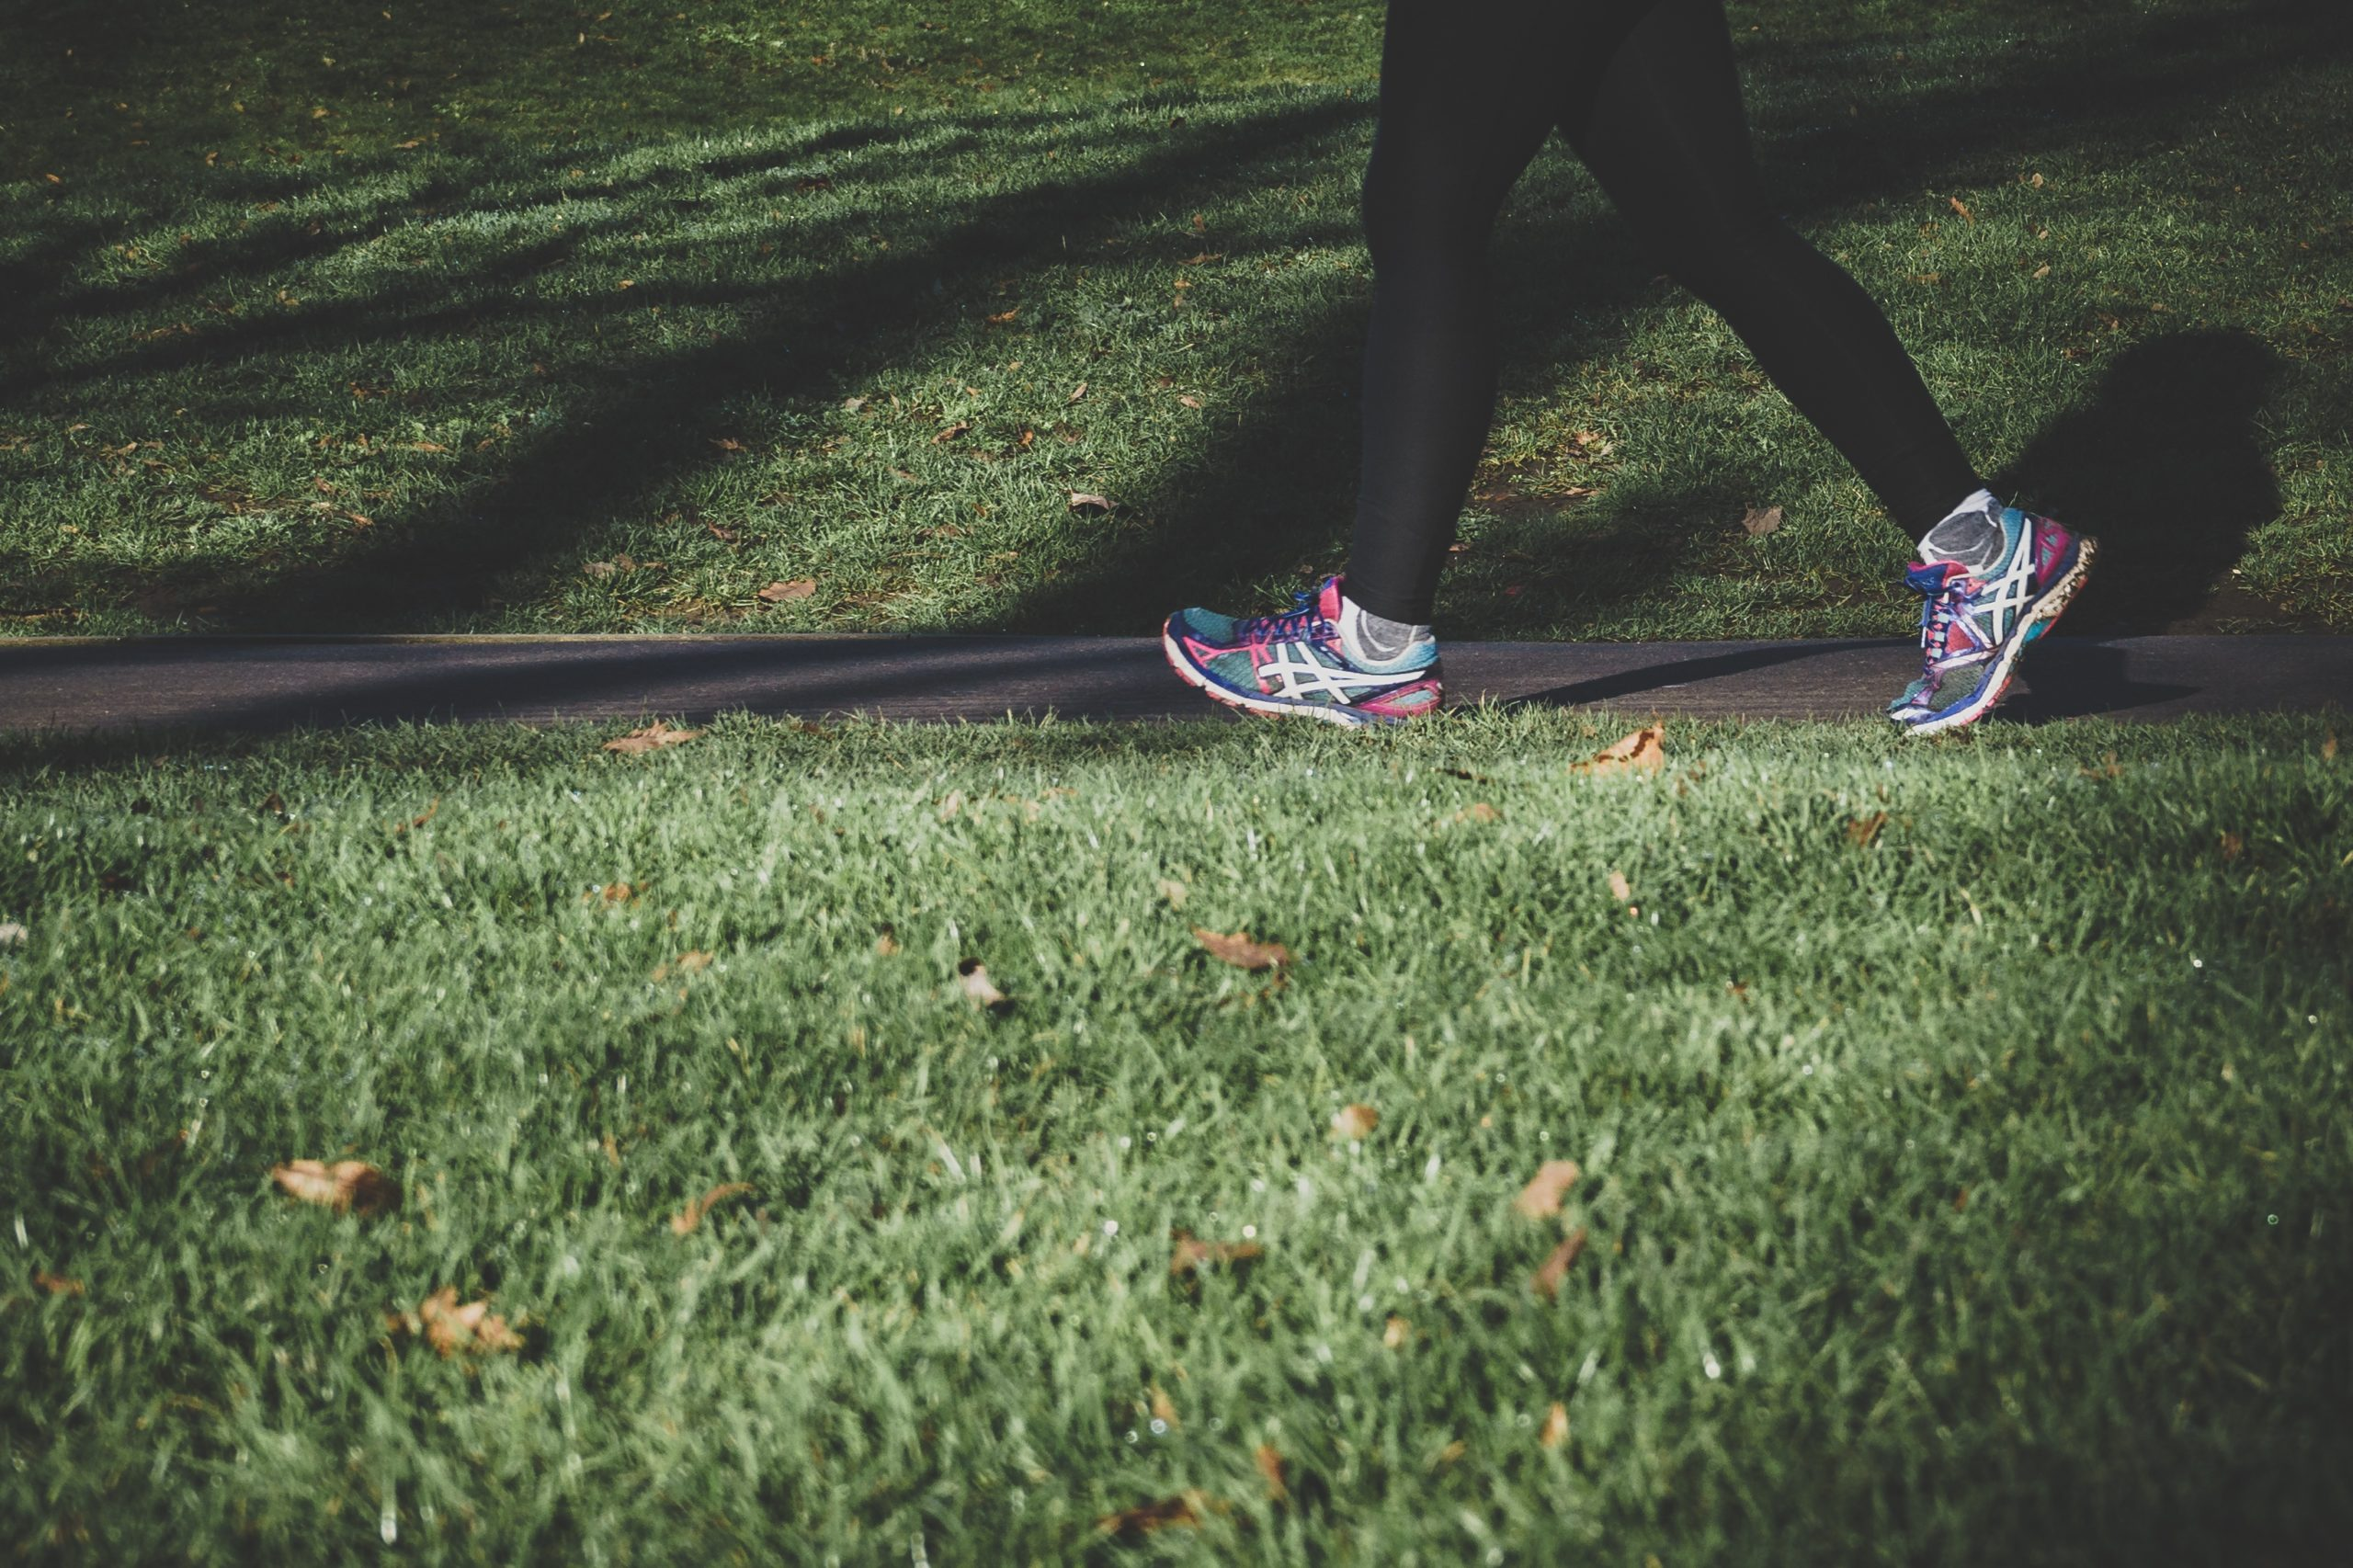 Motivation to exercise - how to find it after you've lost it